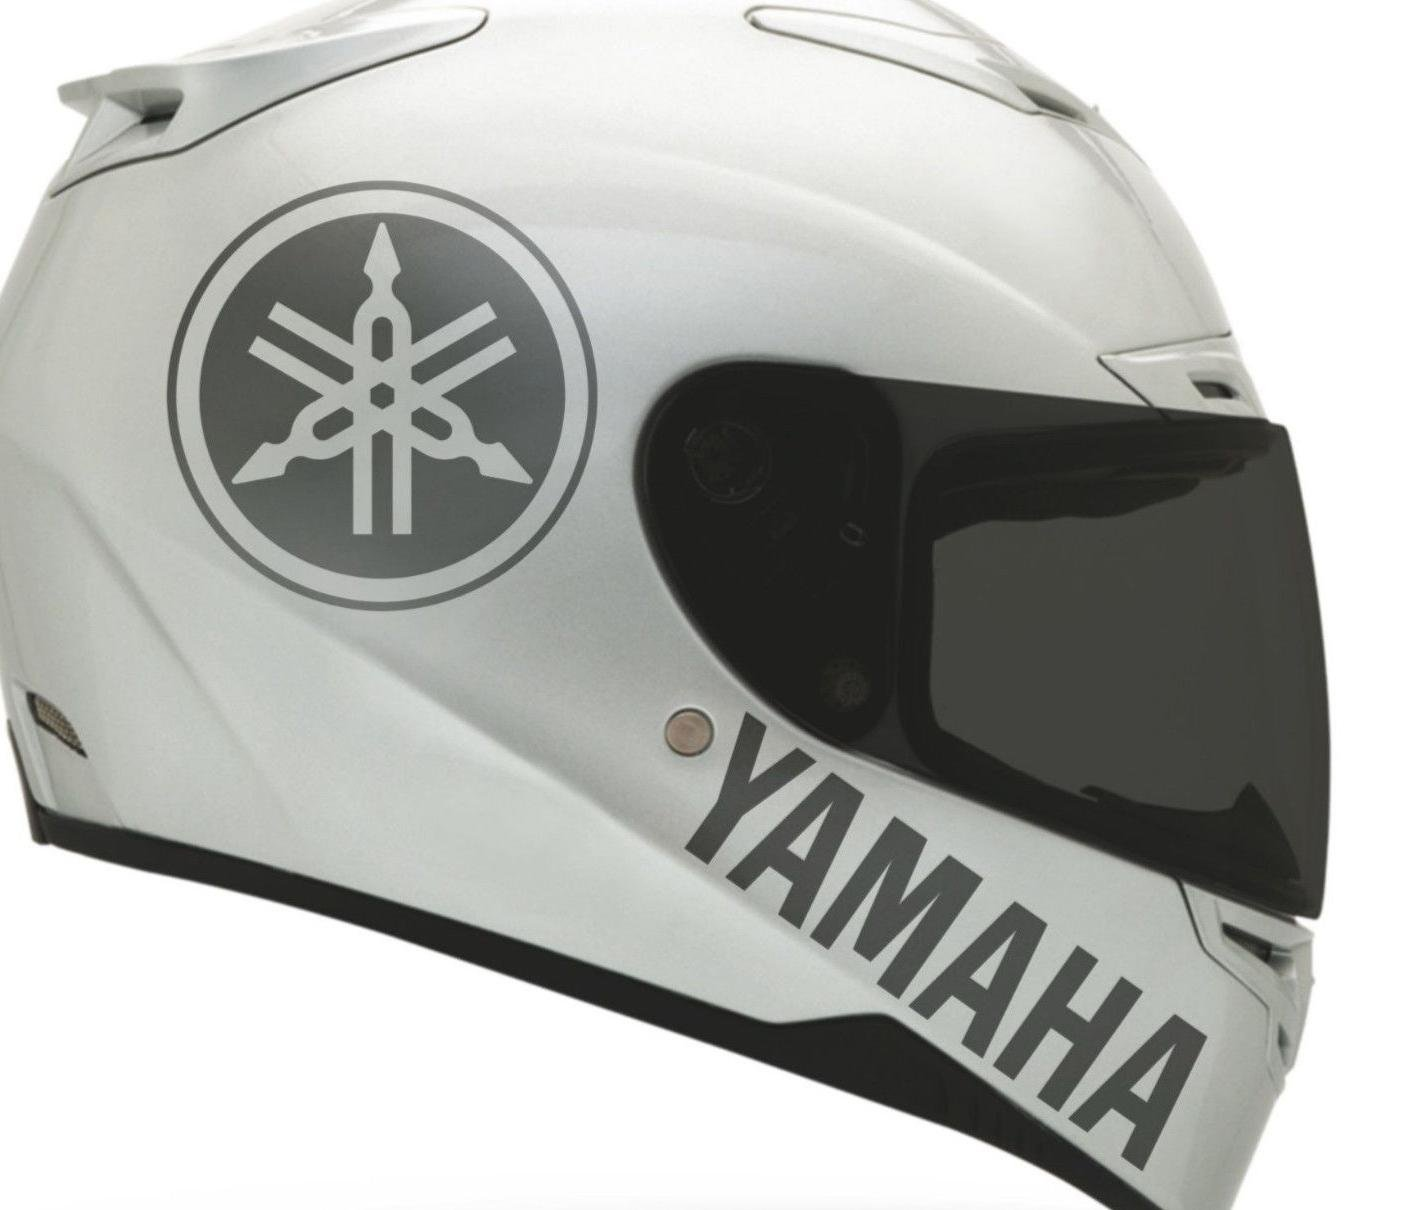 Amazon com 2 x yamaha sticker for helmet decal motorcycle decal sticker buy 2 set get 3rd free automotive